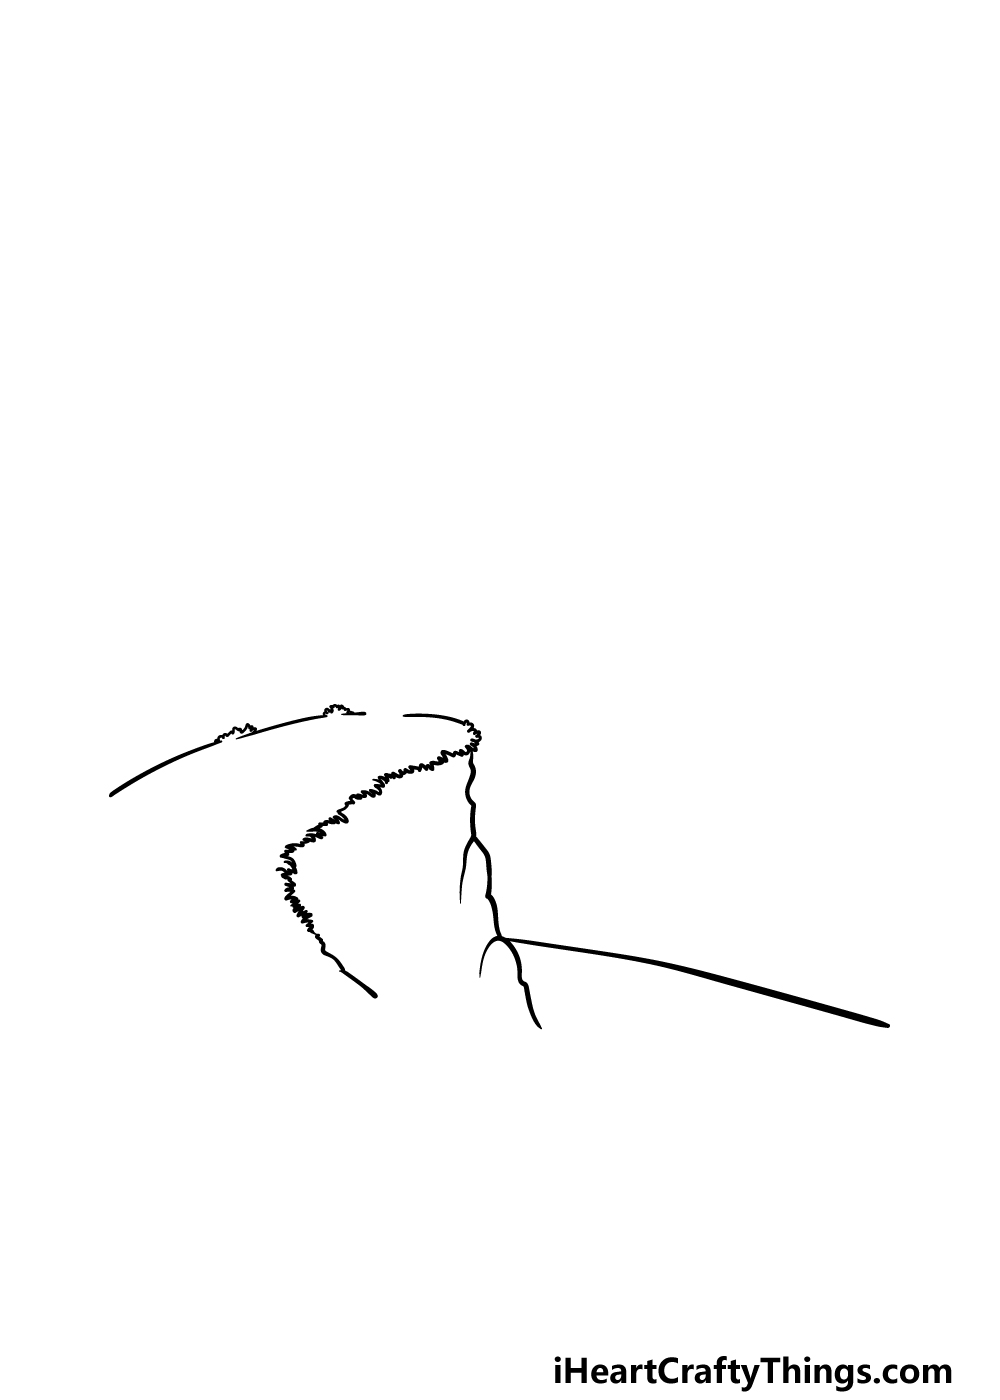 drawing a cliff step 2